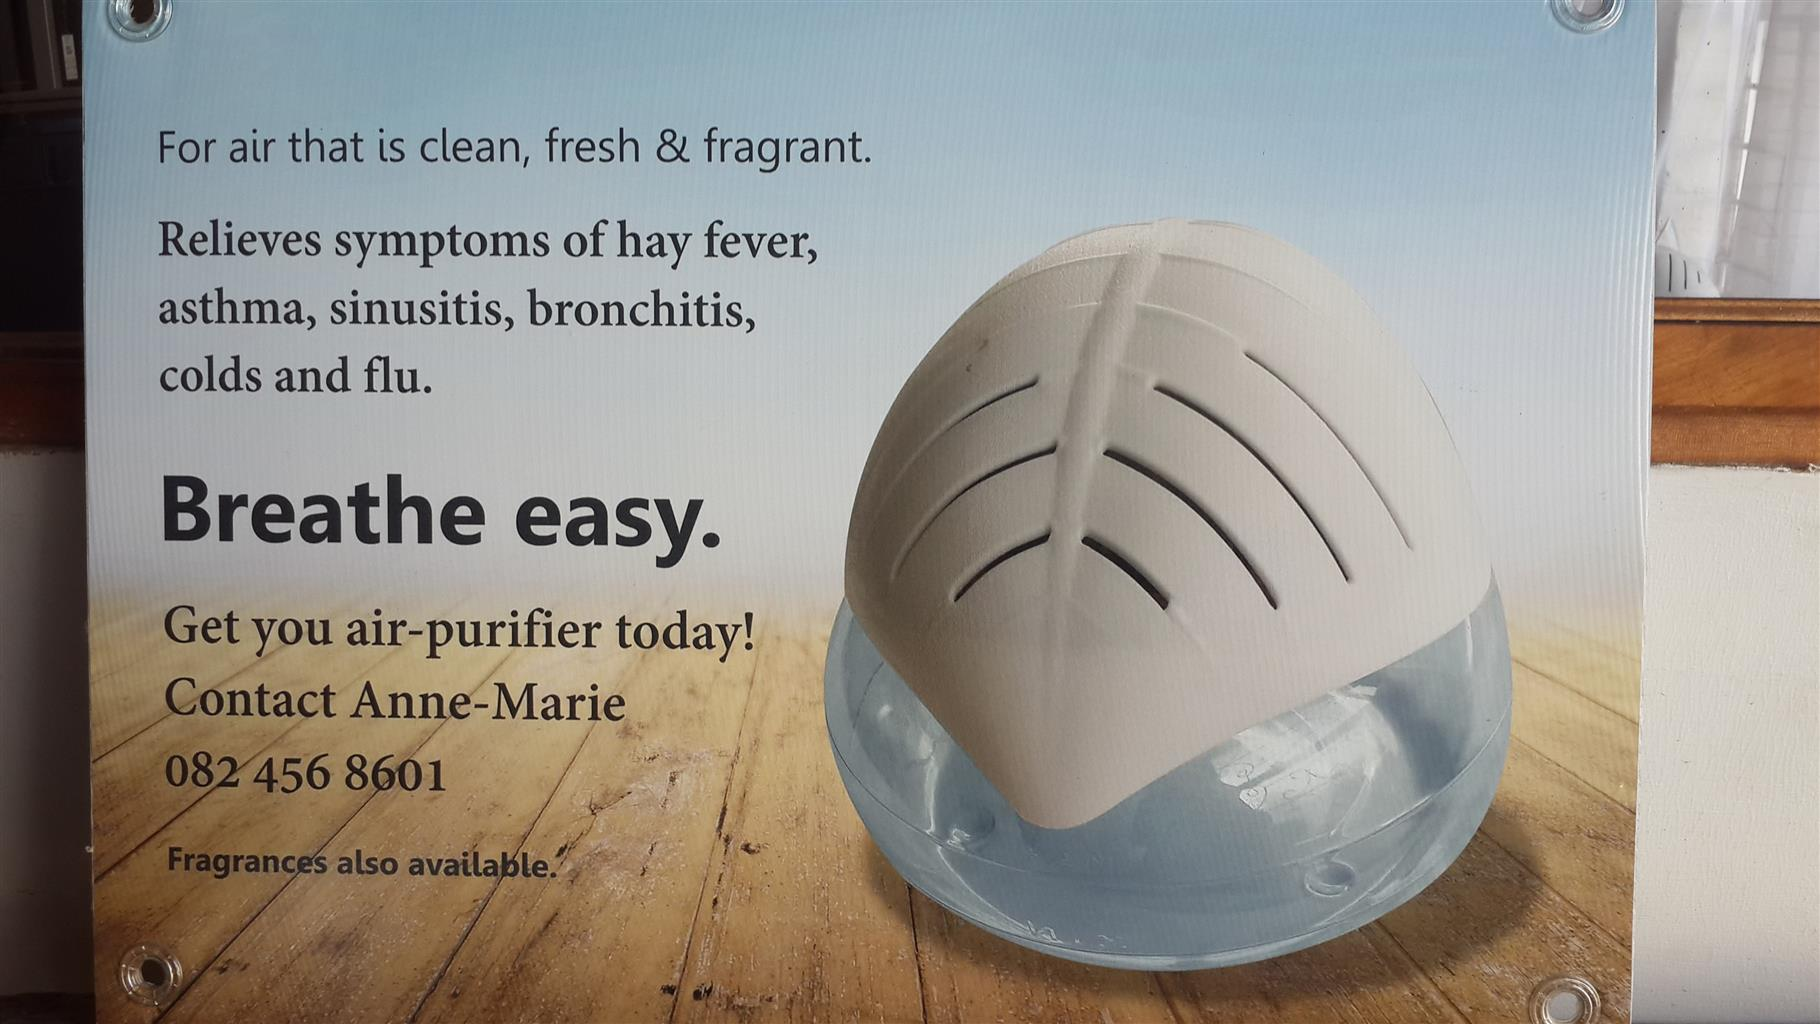 Water Air-Purifier & Fragrances